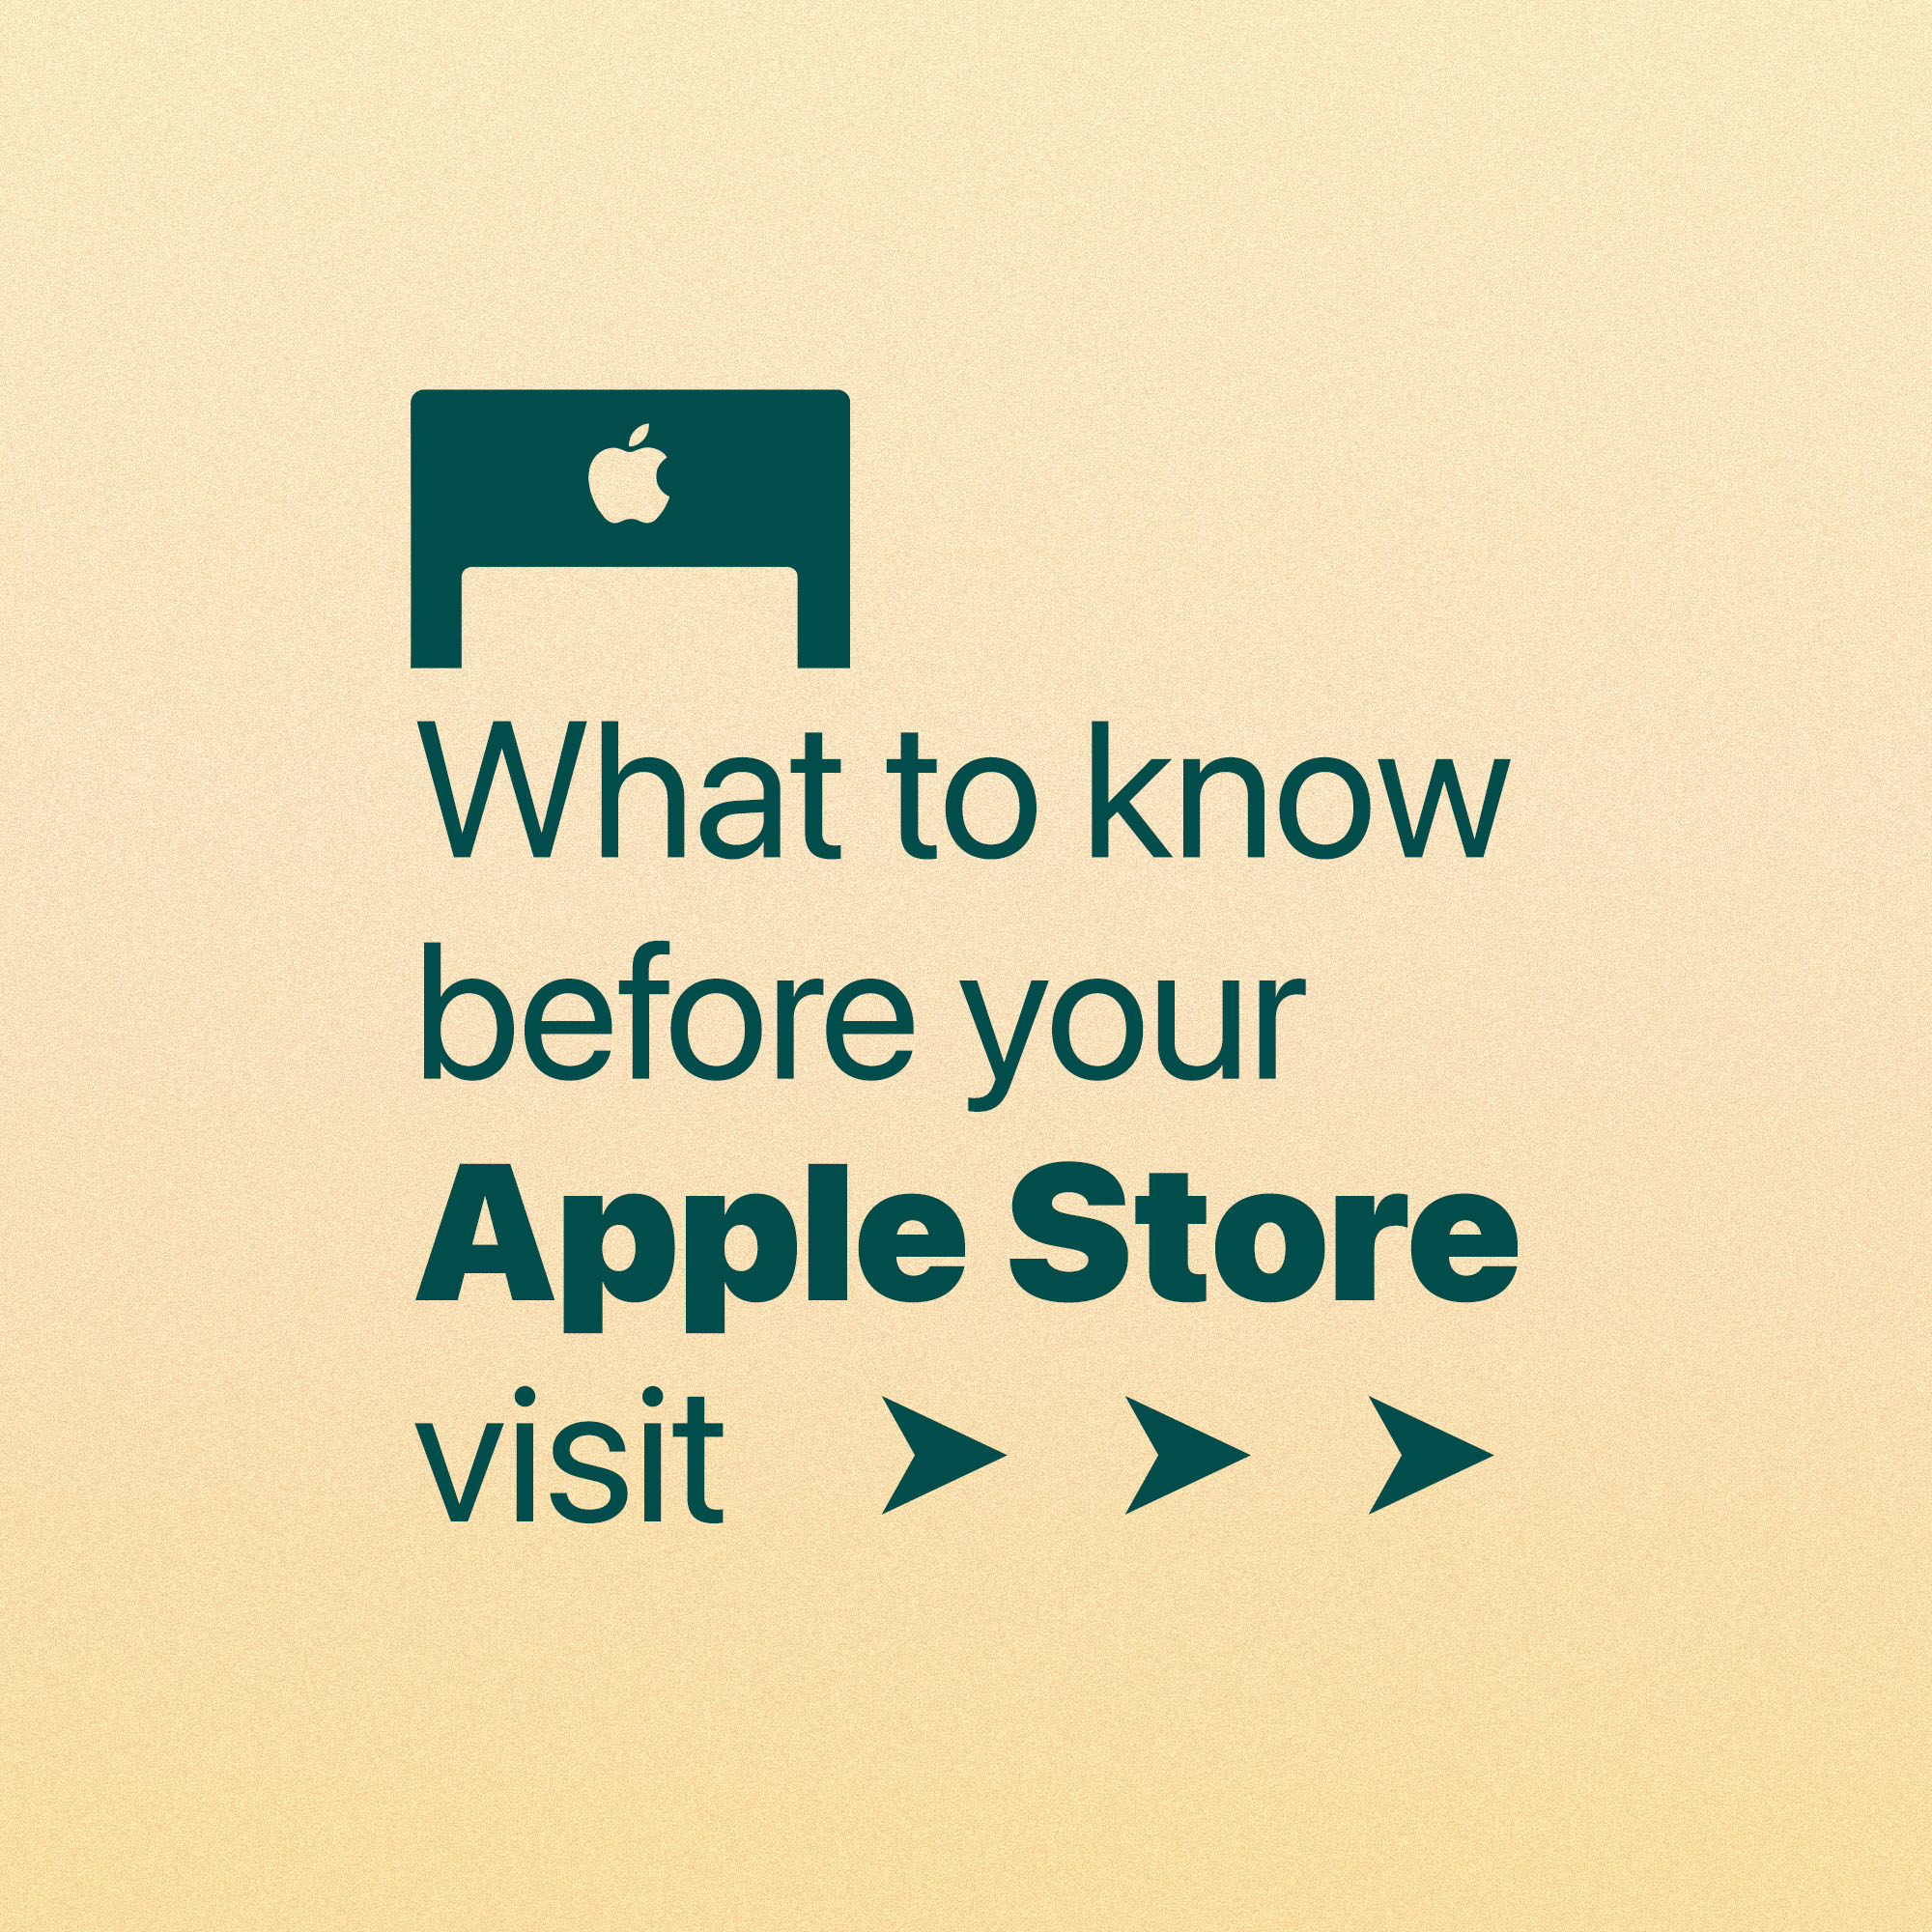 What to know before your Apple Store visit.